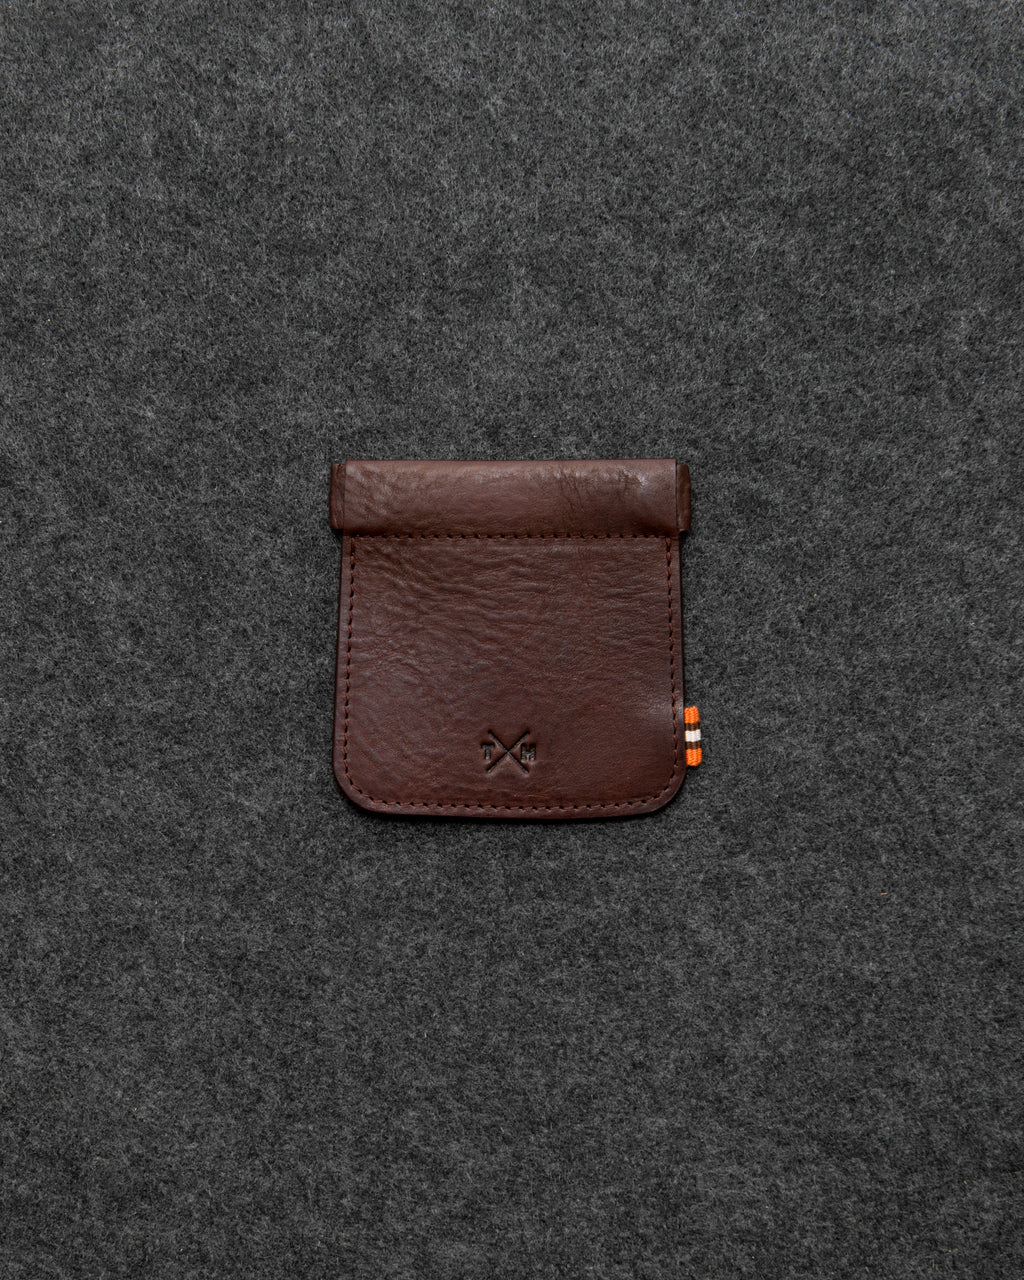 Chukka Leather Snap Top Coin Pouch